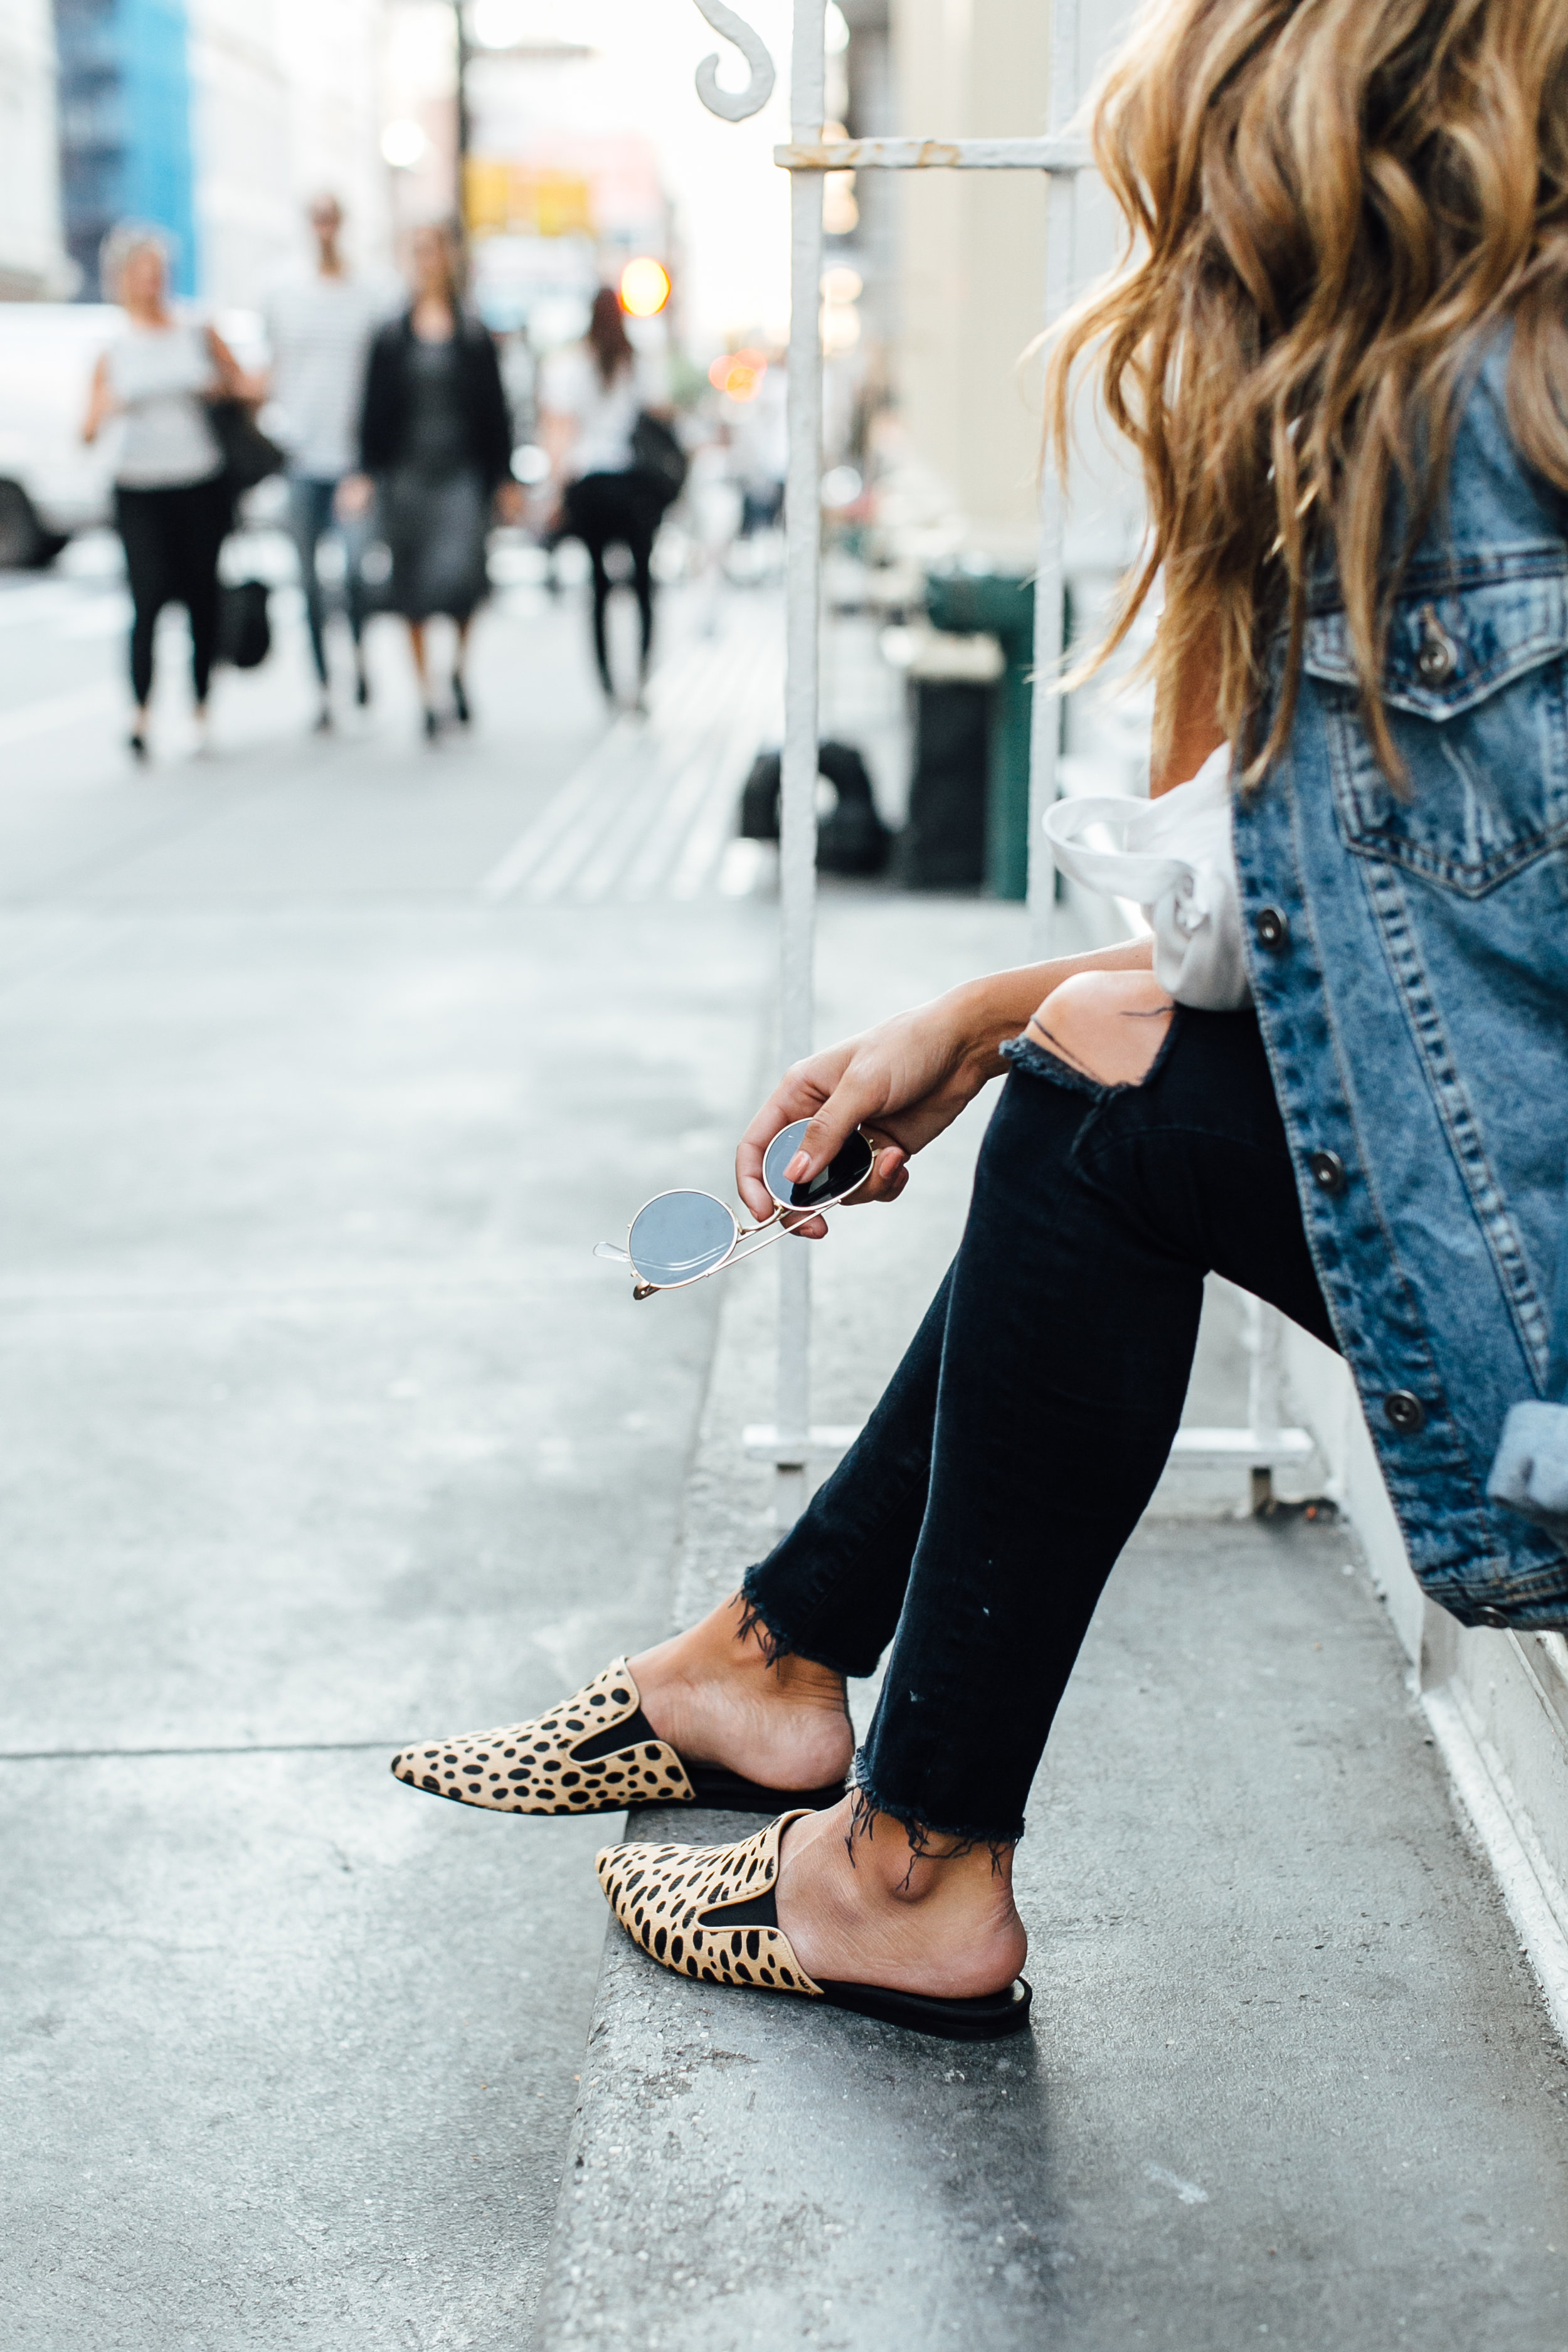 Falcon_Photography_Pursuit_Of_Shoes_SoHo-25.JPG